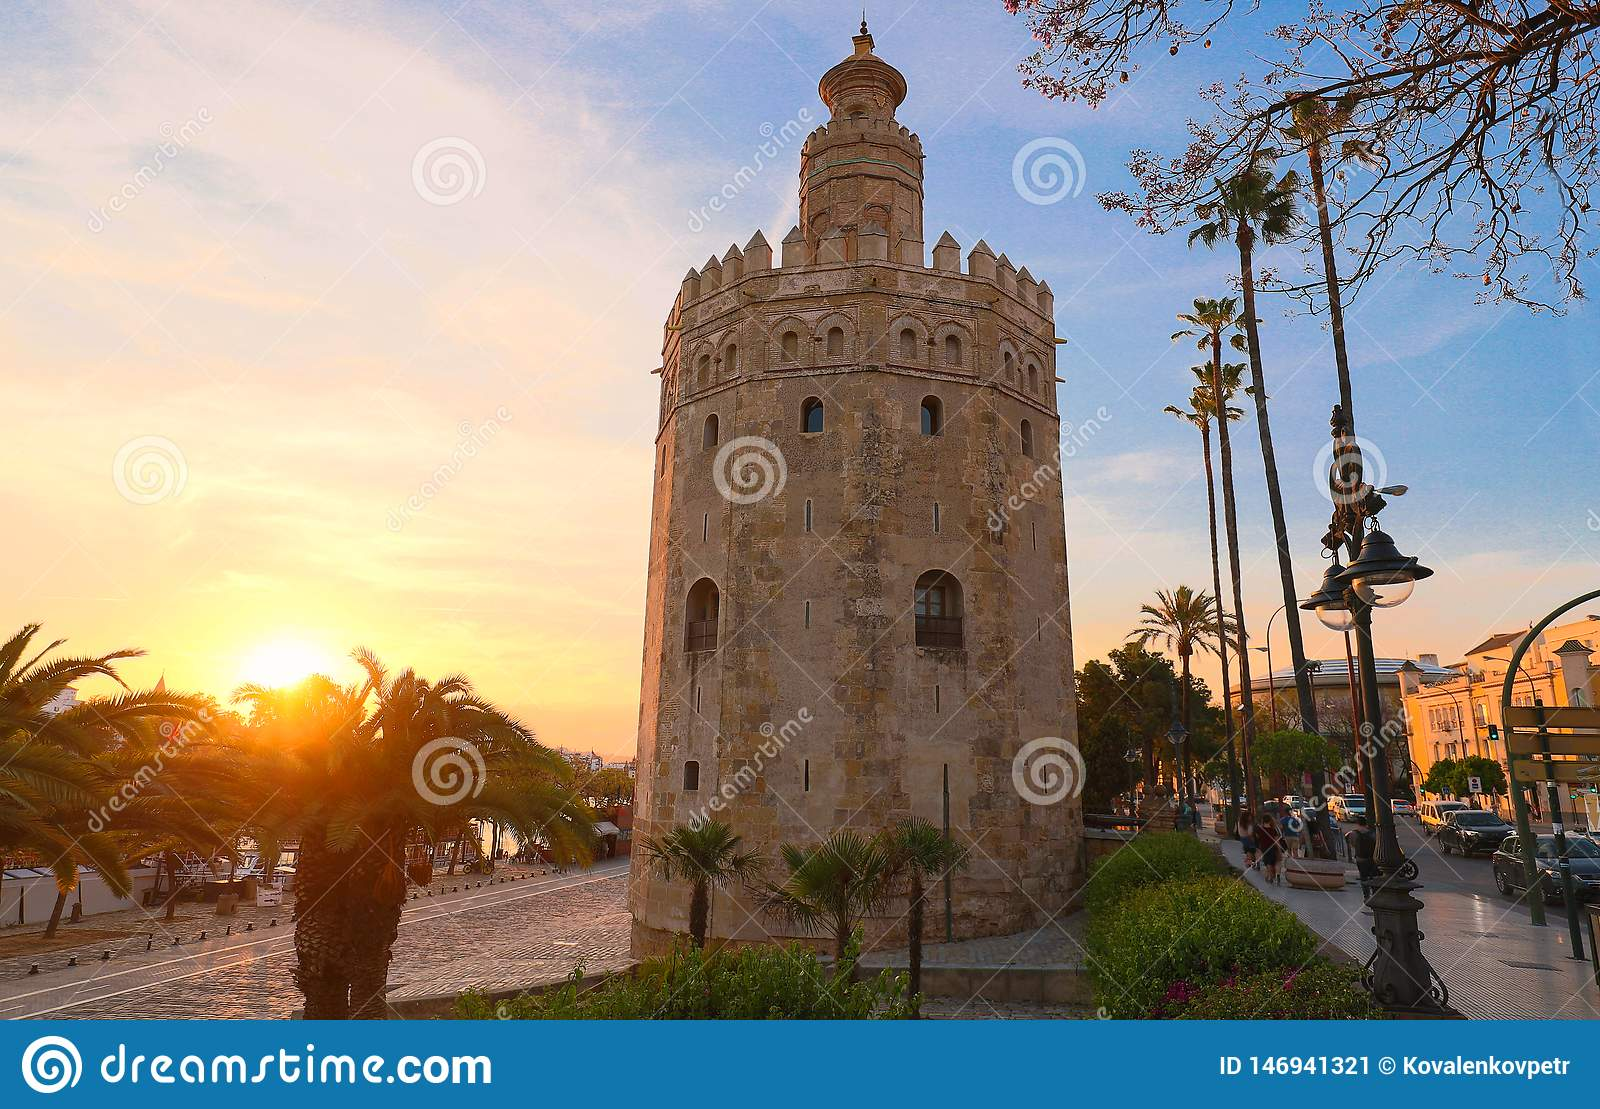 Torre del Oro -Tower of Gold on the bank of the Guadalquivir river, Seville, Spain